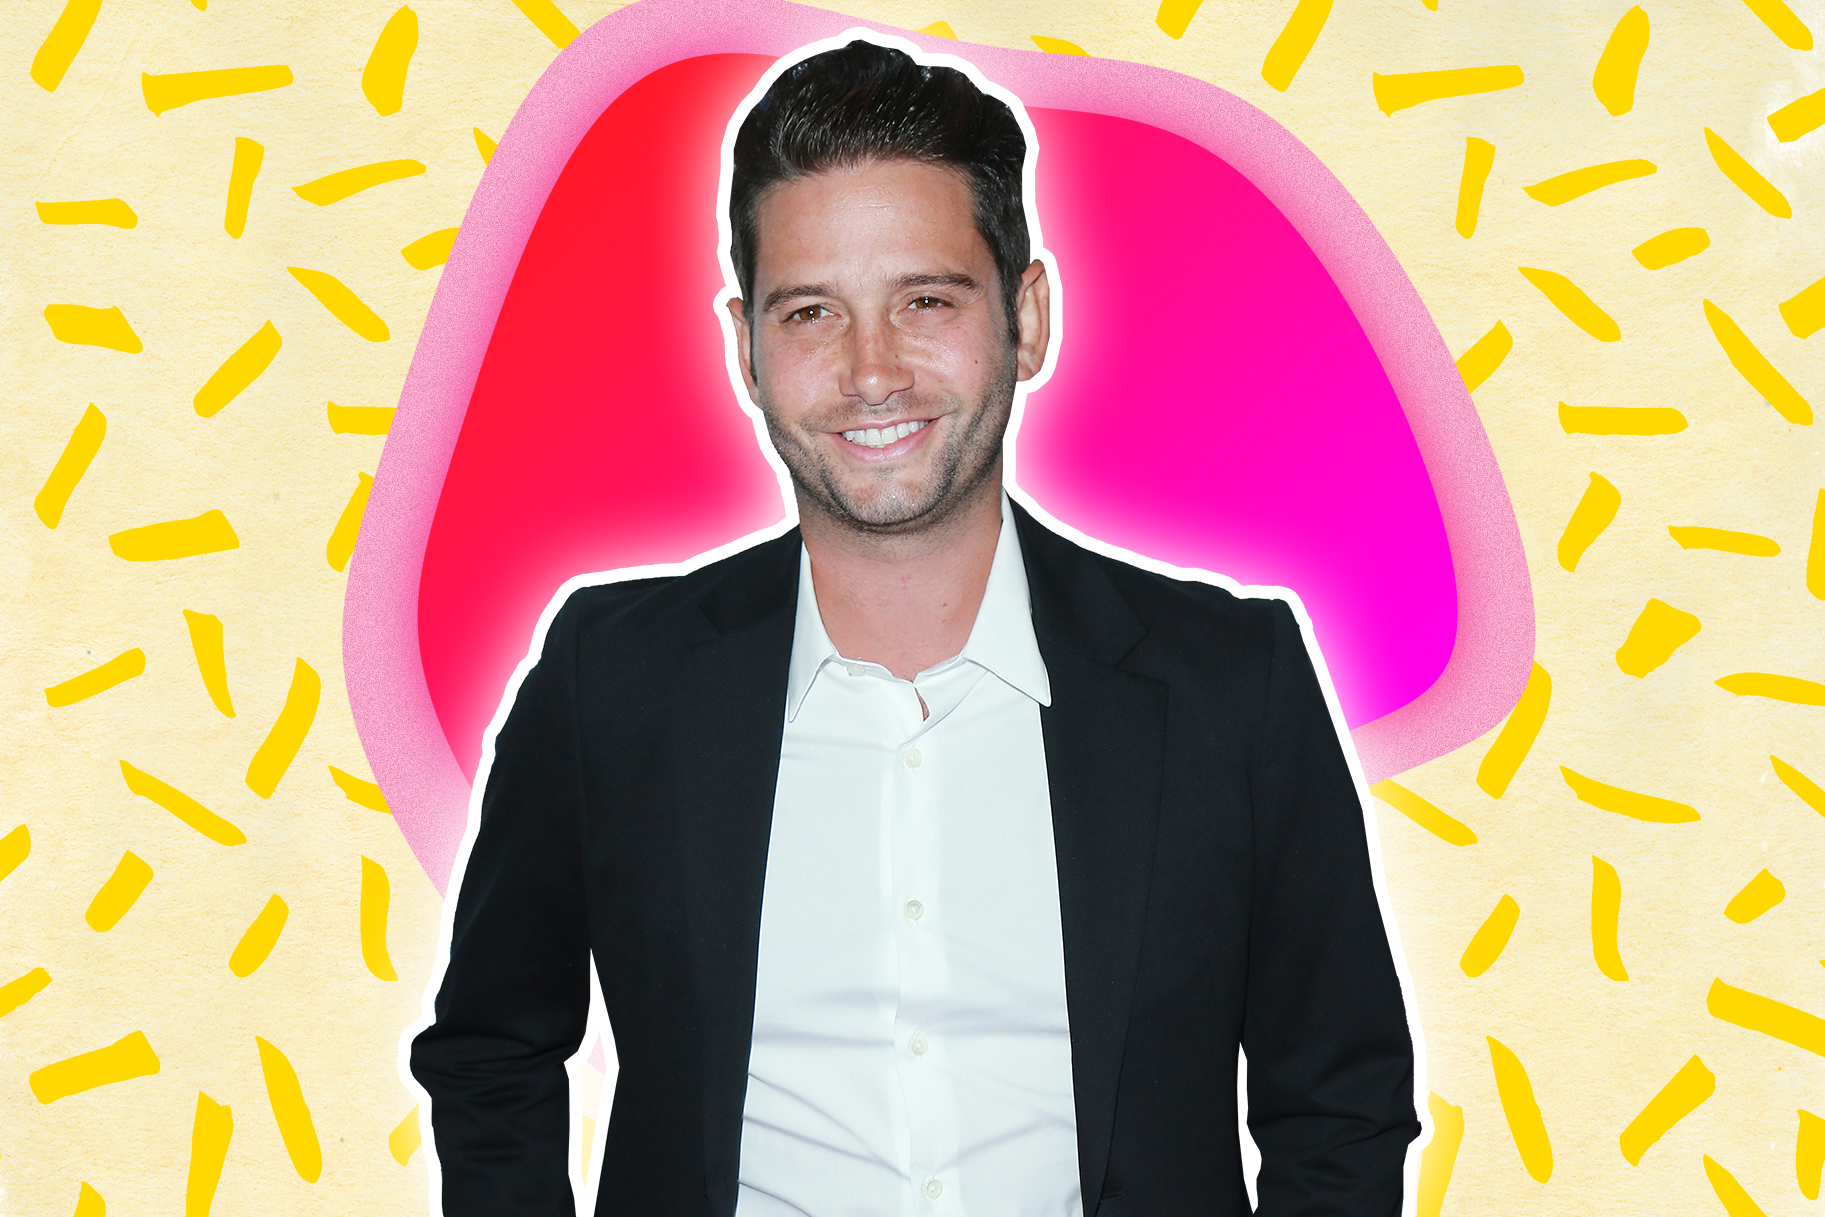 Josh Flagg Home Plans